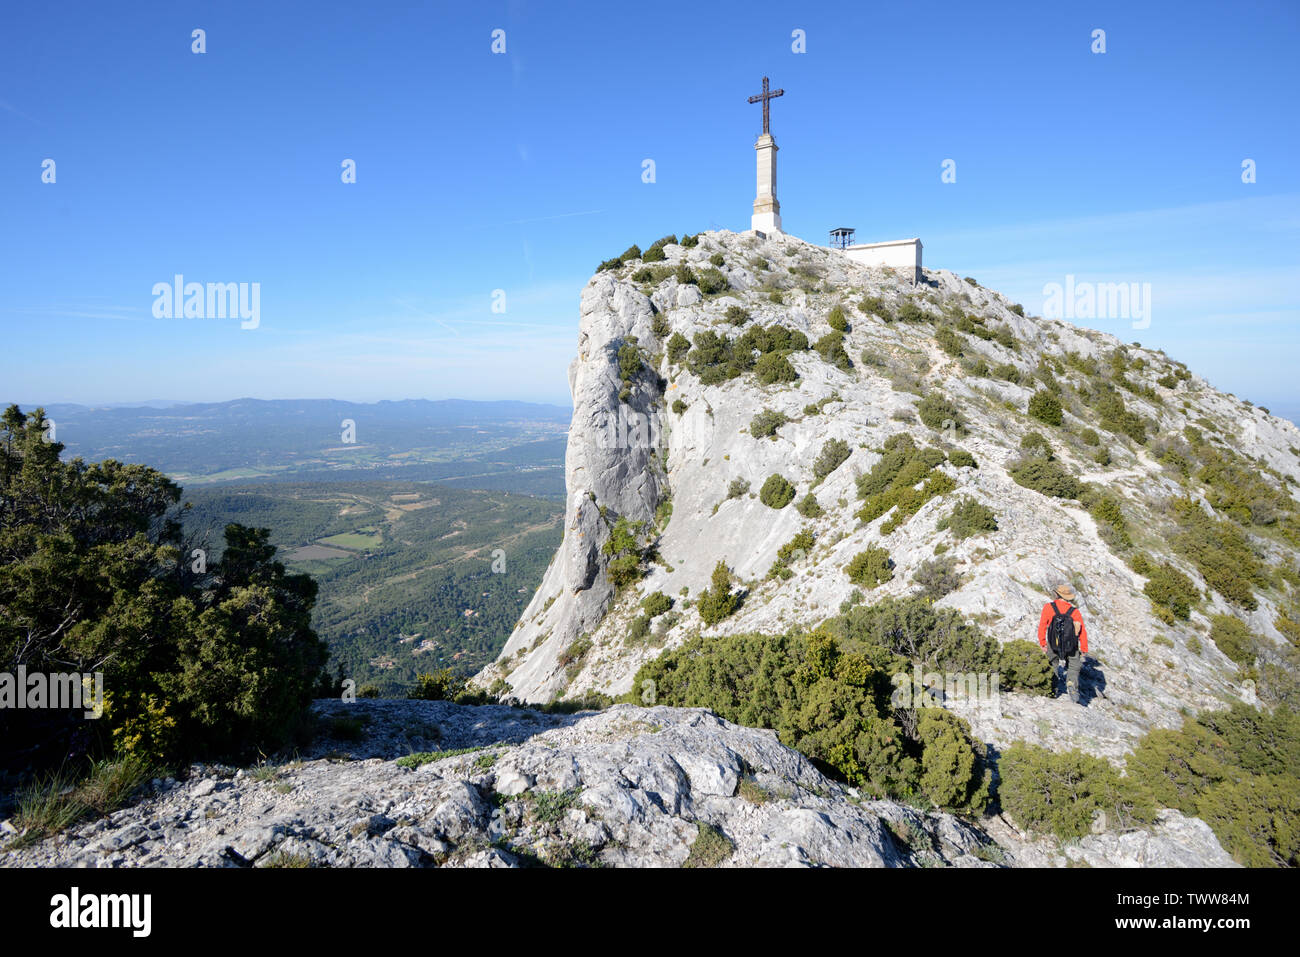 Walker near the Summit of Mont or Montagne Sainte-Victoire Mountain Aix-en-Provence Provence France - Stock Image